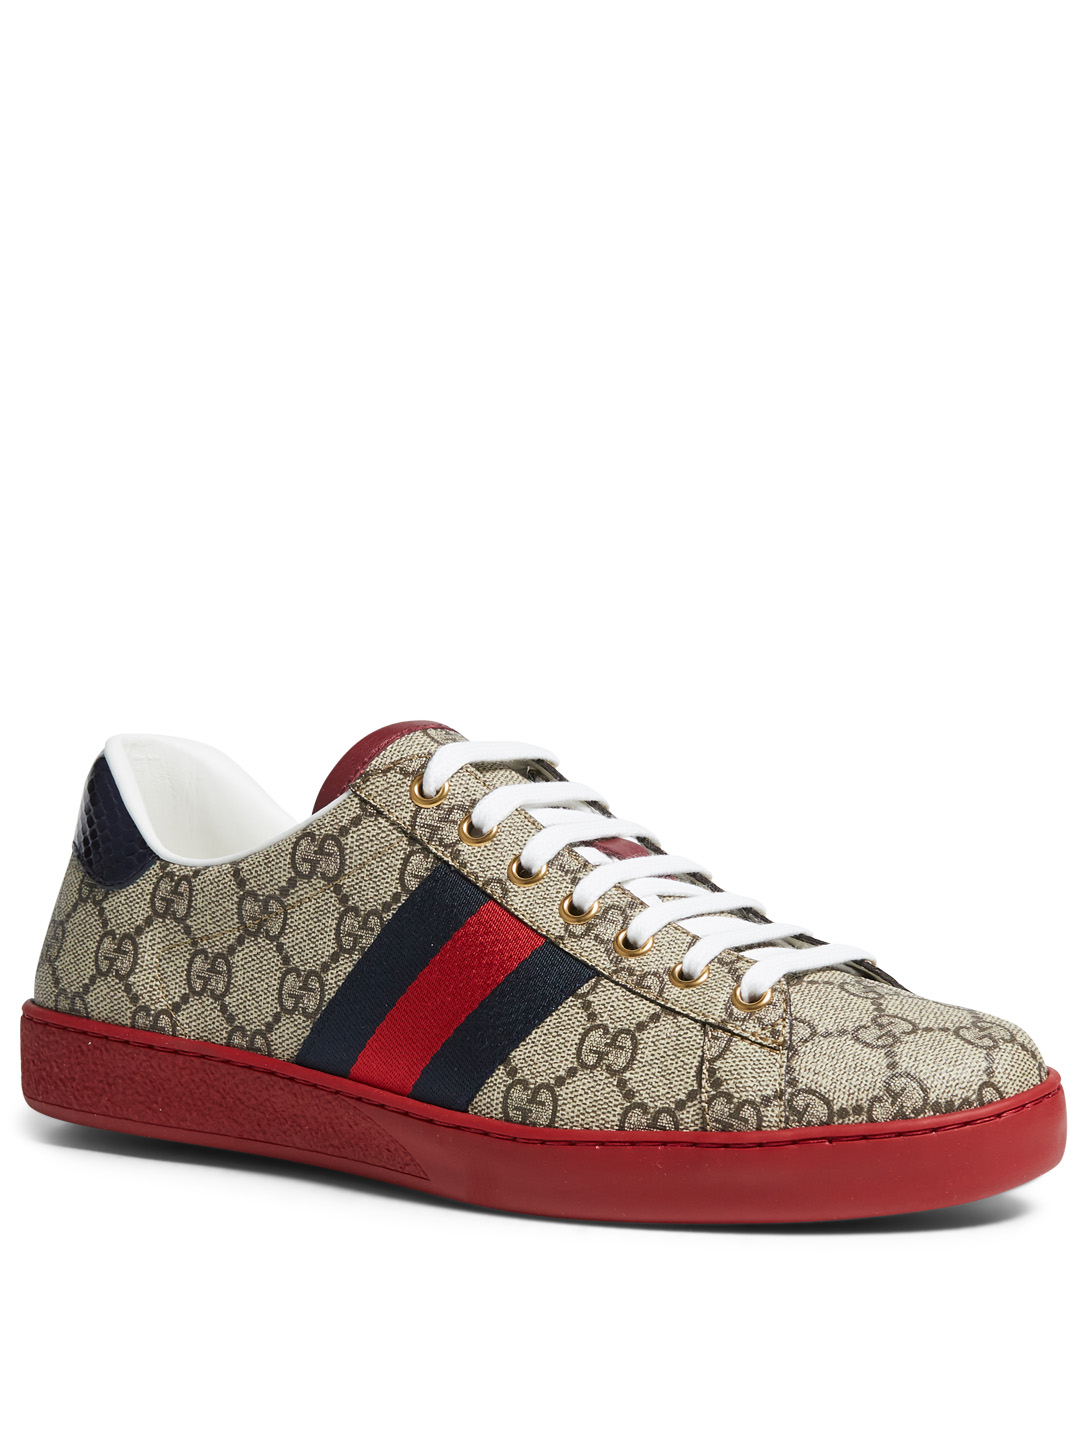 6539de265c7 ... GUCCI Ace GG Supreme Sneakers Designers Neutral ...